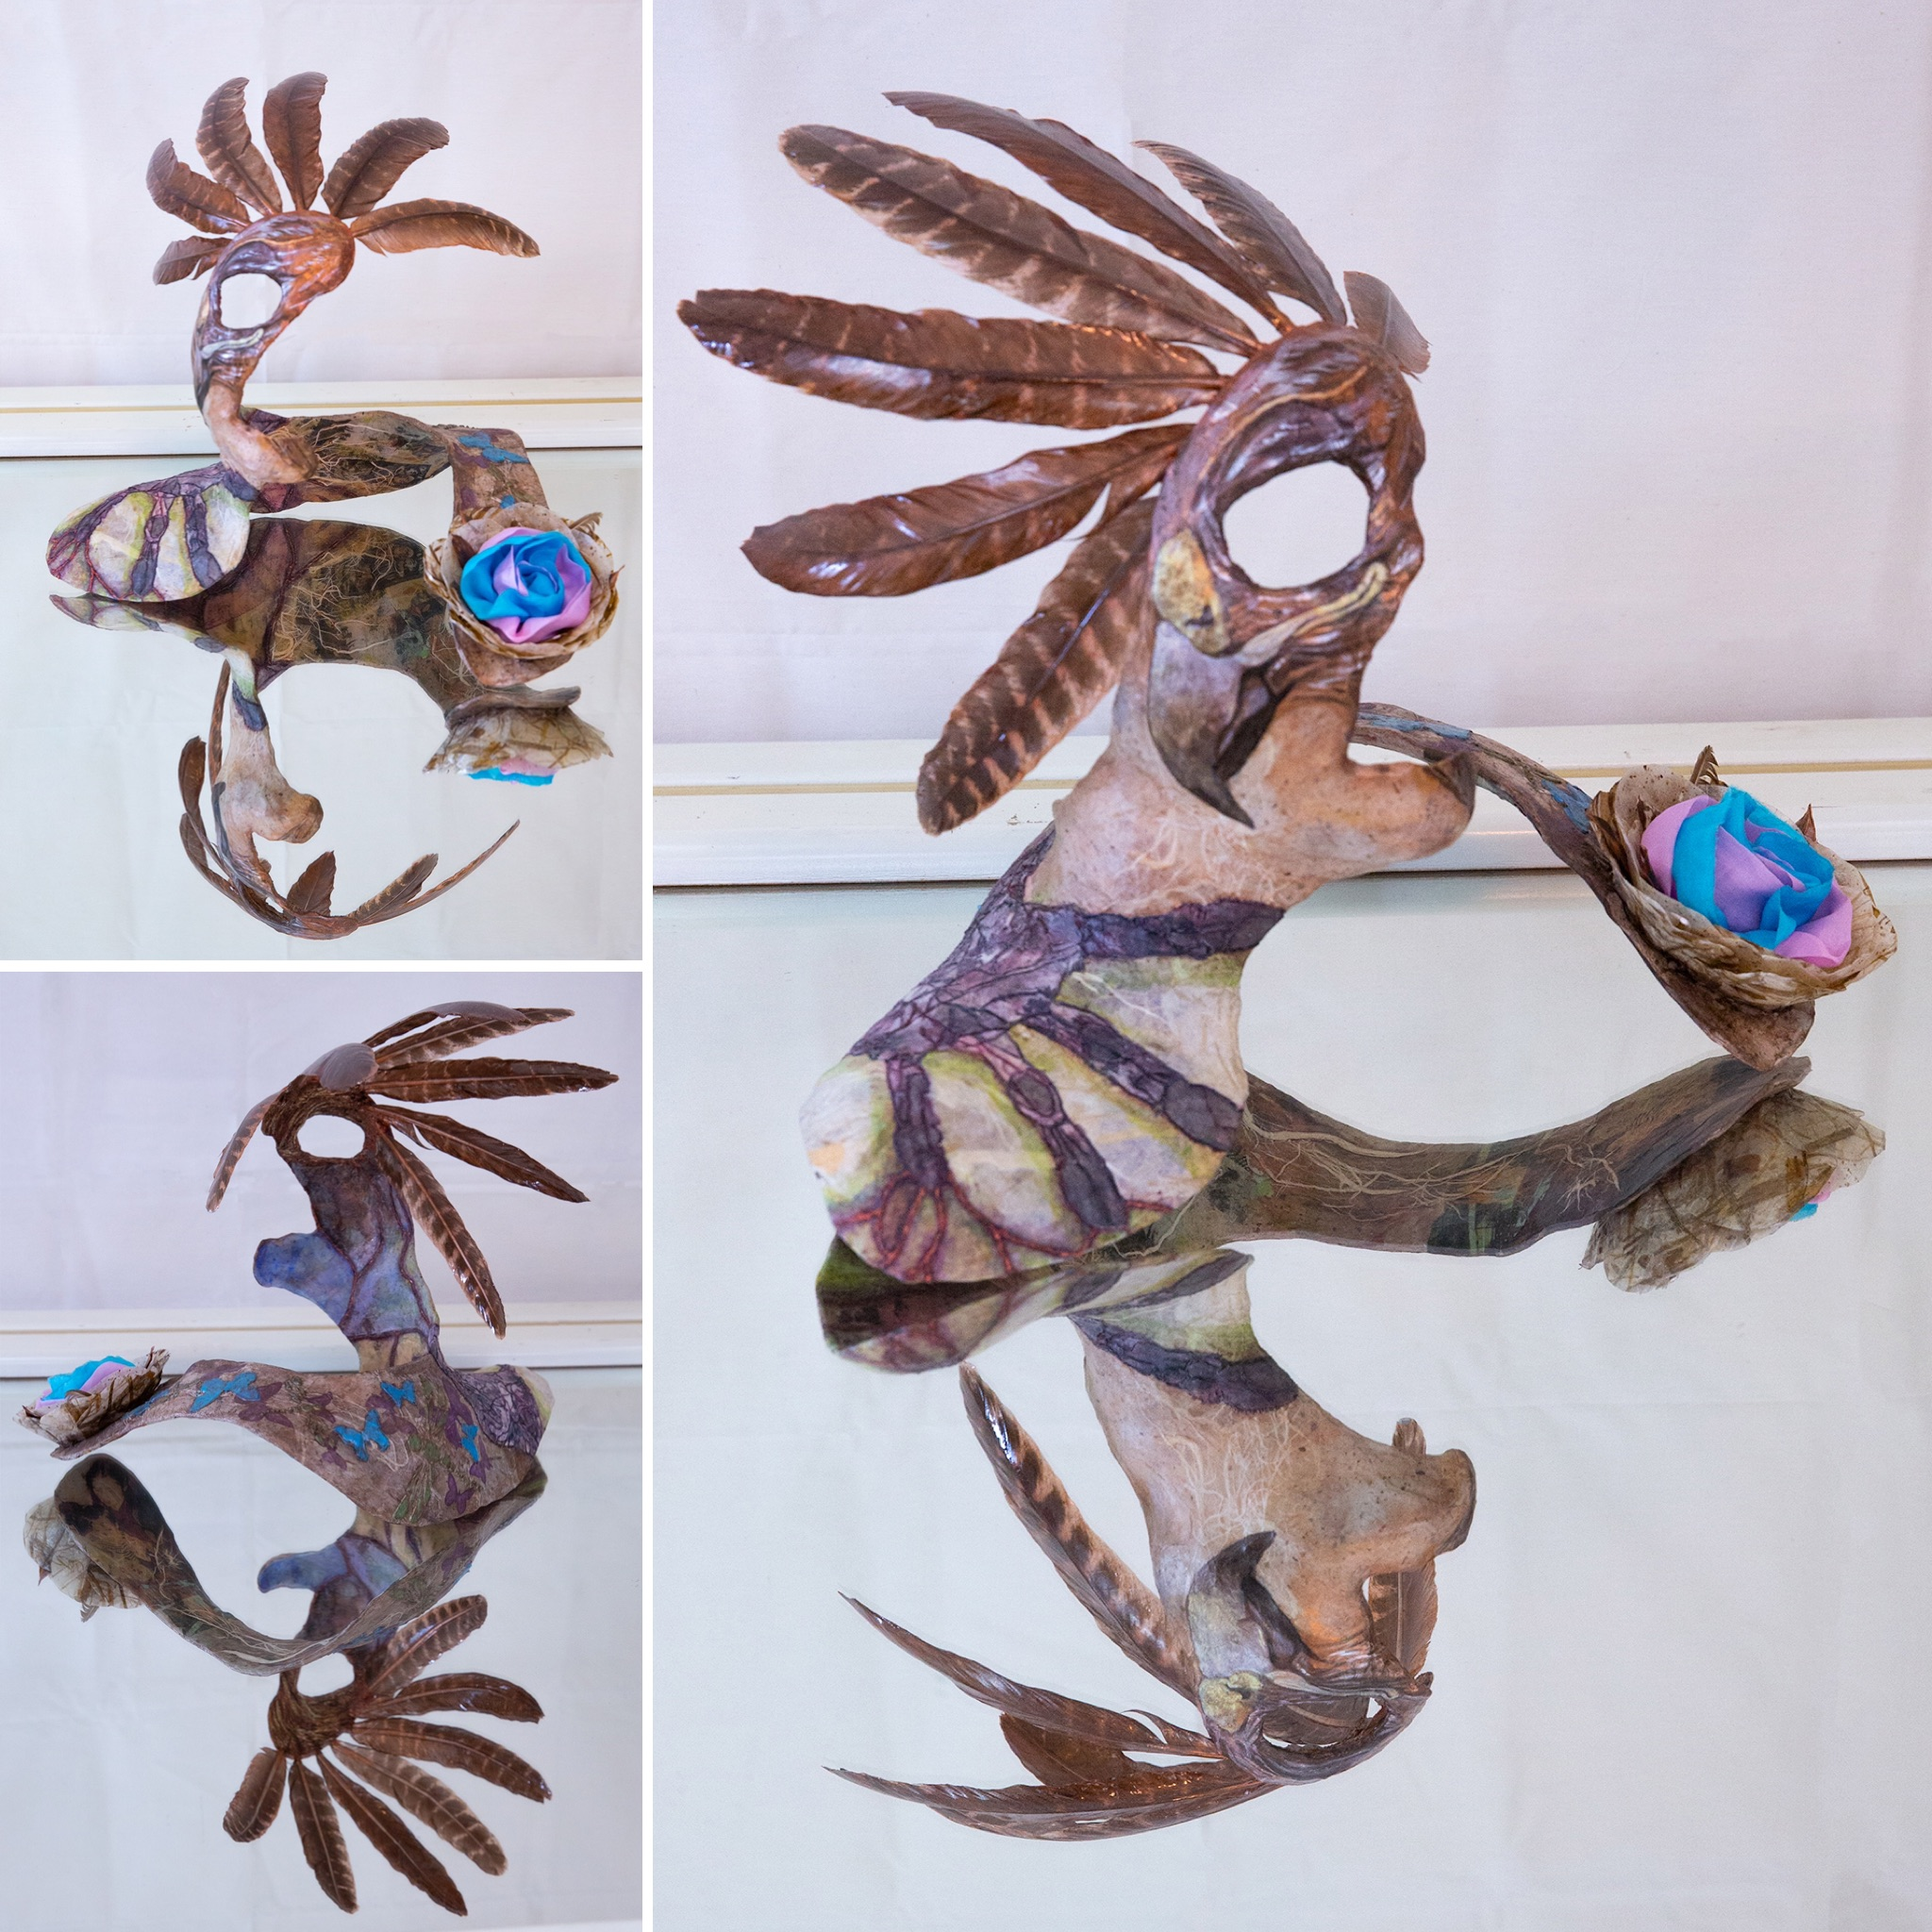 """KIM - The Shaman - """"When I look at my sculpture I am reminded of how far I have come in my life in overcoming my traumas. Jessi created a piece that tells my story, good and bad, in such a way that I can reflect on my past with a sense of peace and gratitude.""""""""Jessi is a treasure. From start to finish she gives you the love and support you need through the process. She has one of the purest healer's hearts I have ever had the pleasure to work with. Her approach through the BIO process combines the healing aspects of Reiki and diving deep into your story to help you overcome the traumas that cause you to have a negative body image and externalize it through a beautiful piece of art that reflects the healing that occurs to that part of the body as you release the pain you've held there."""""""